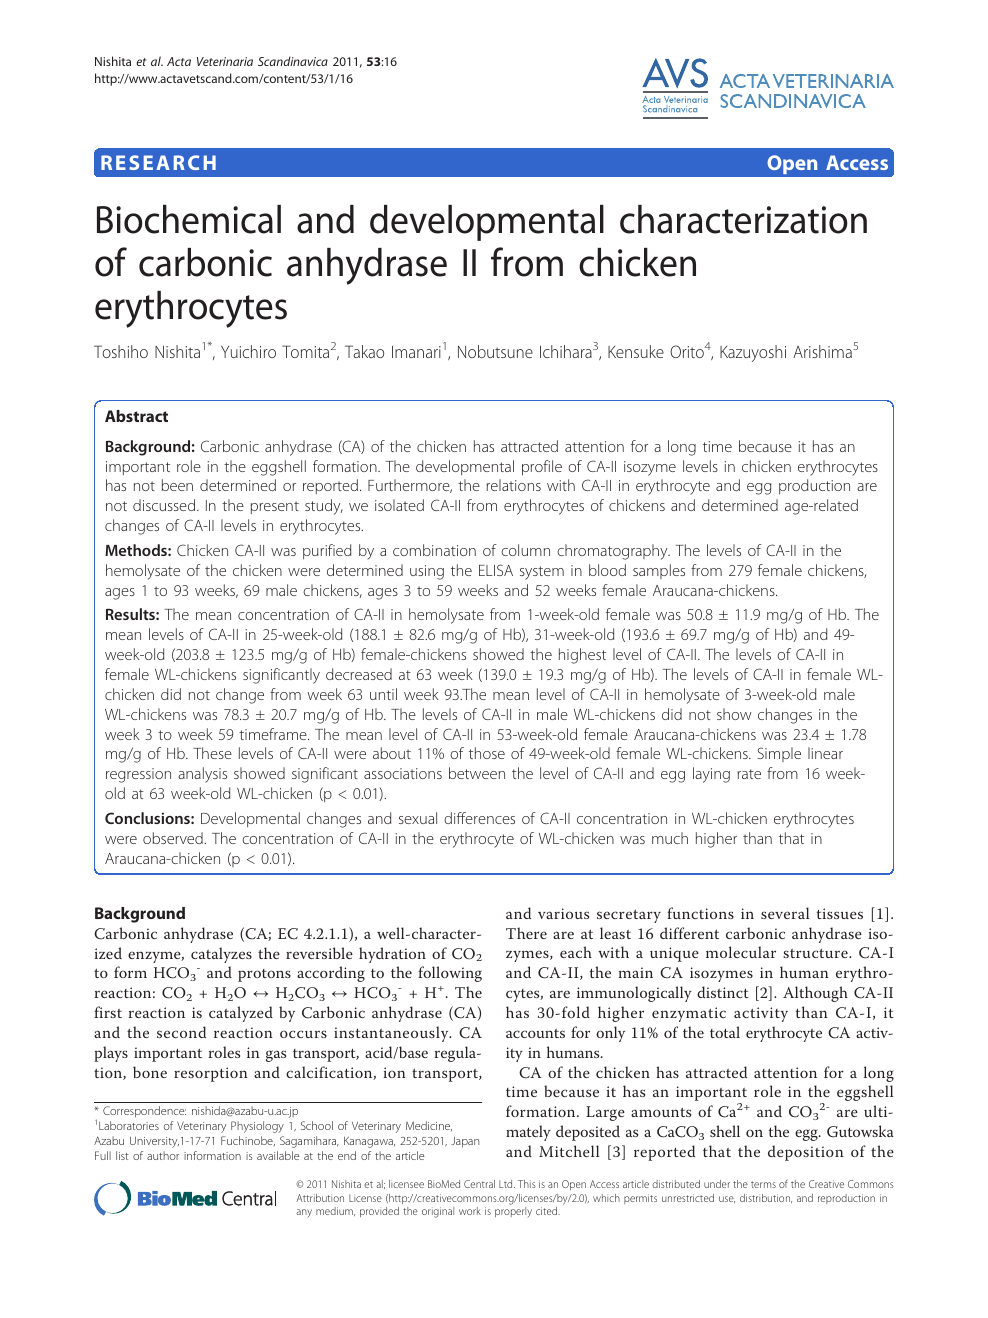 Biochemical and developmental characterization of carbonic